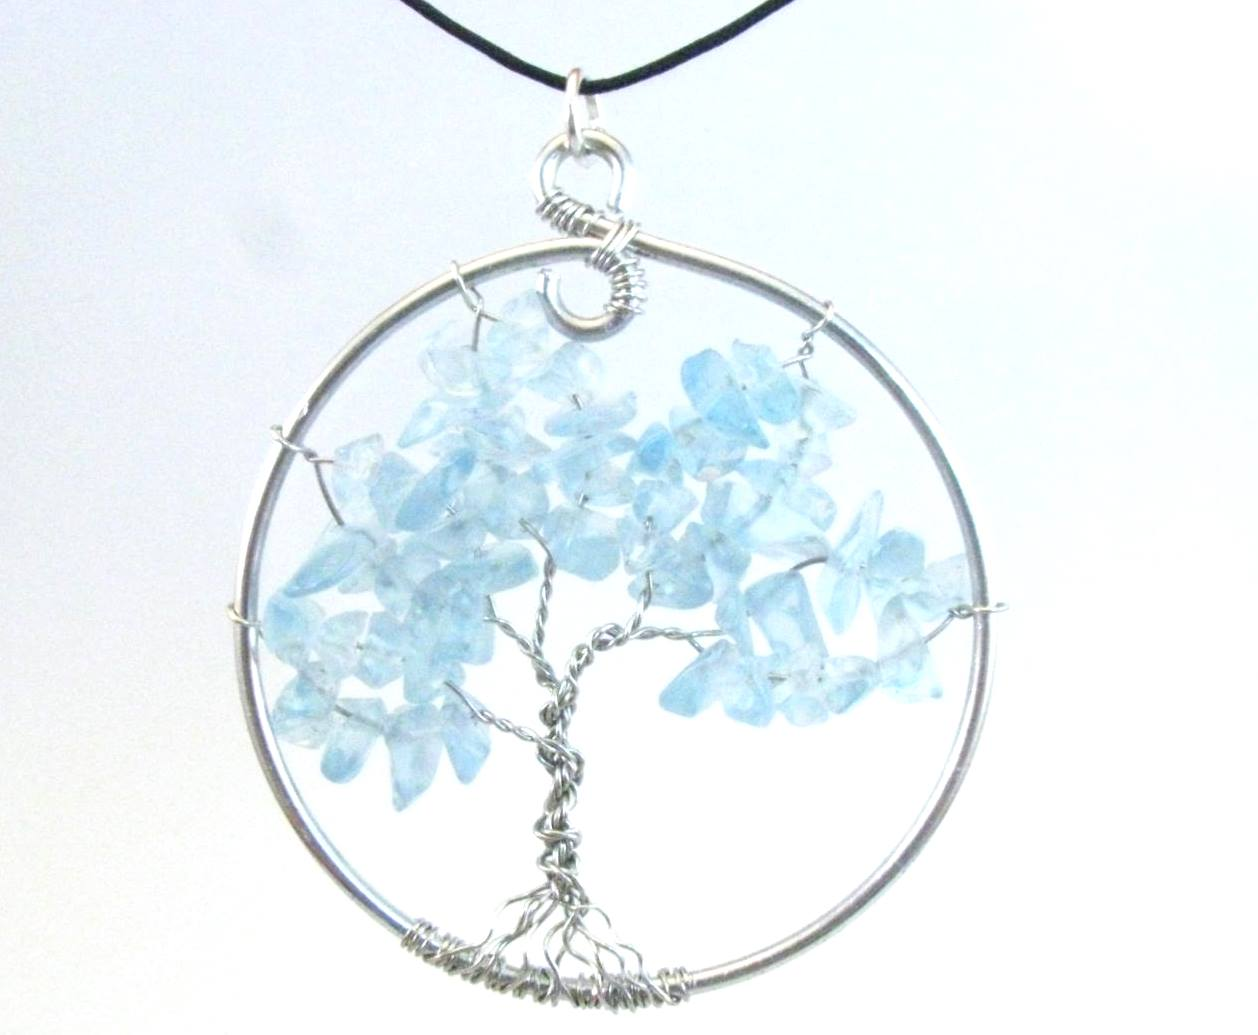 Icy Blue Tree of Life Pendant Necklace or Suncatcher